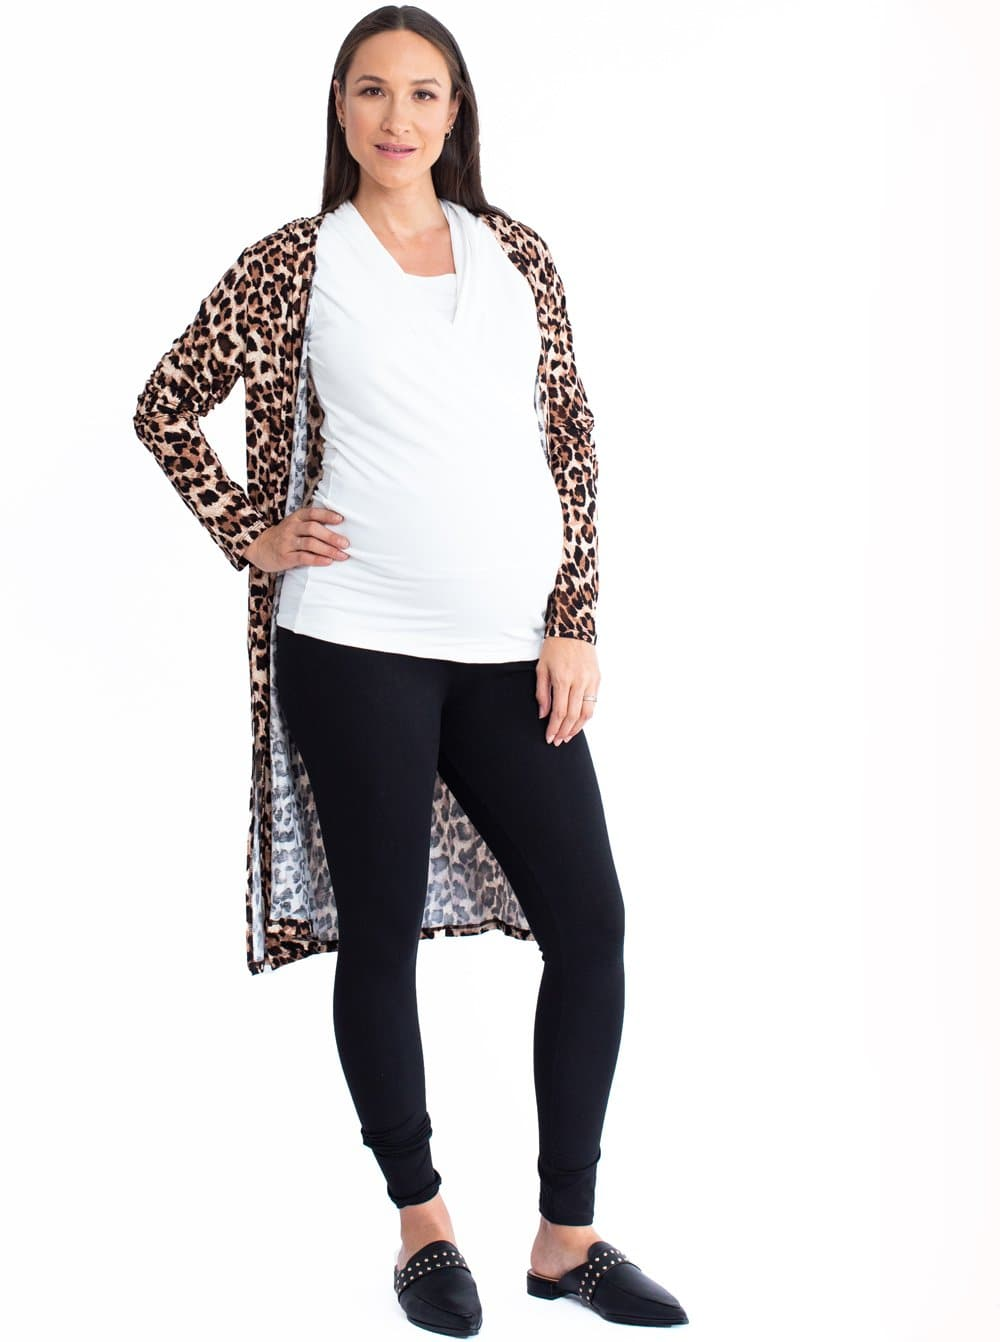 3 Piece Maternity Lounge to Work Outfit